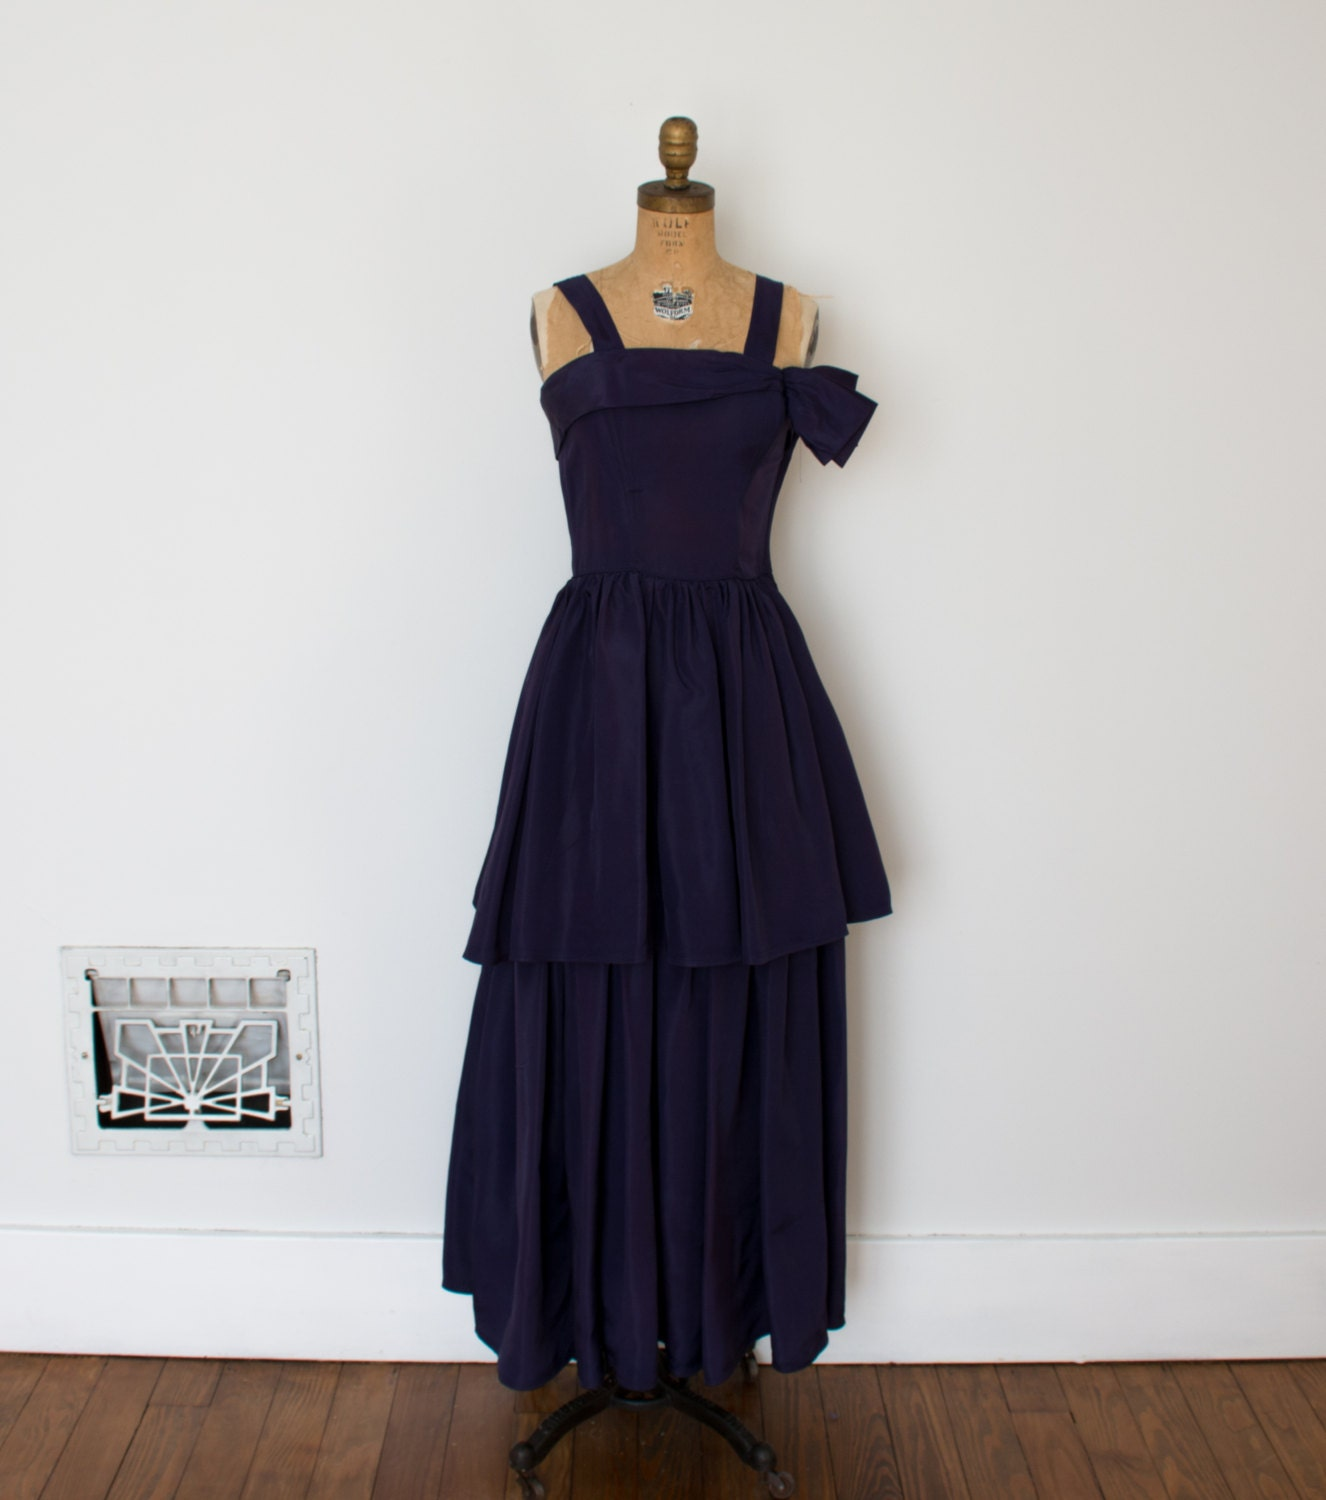 1940s Dressing Gown: ON SALE Vintage 1940s Dress 40s Evening Gown The